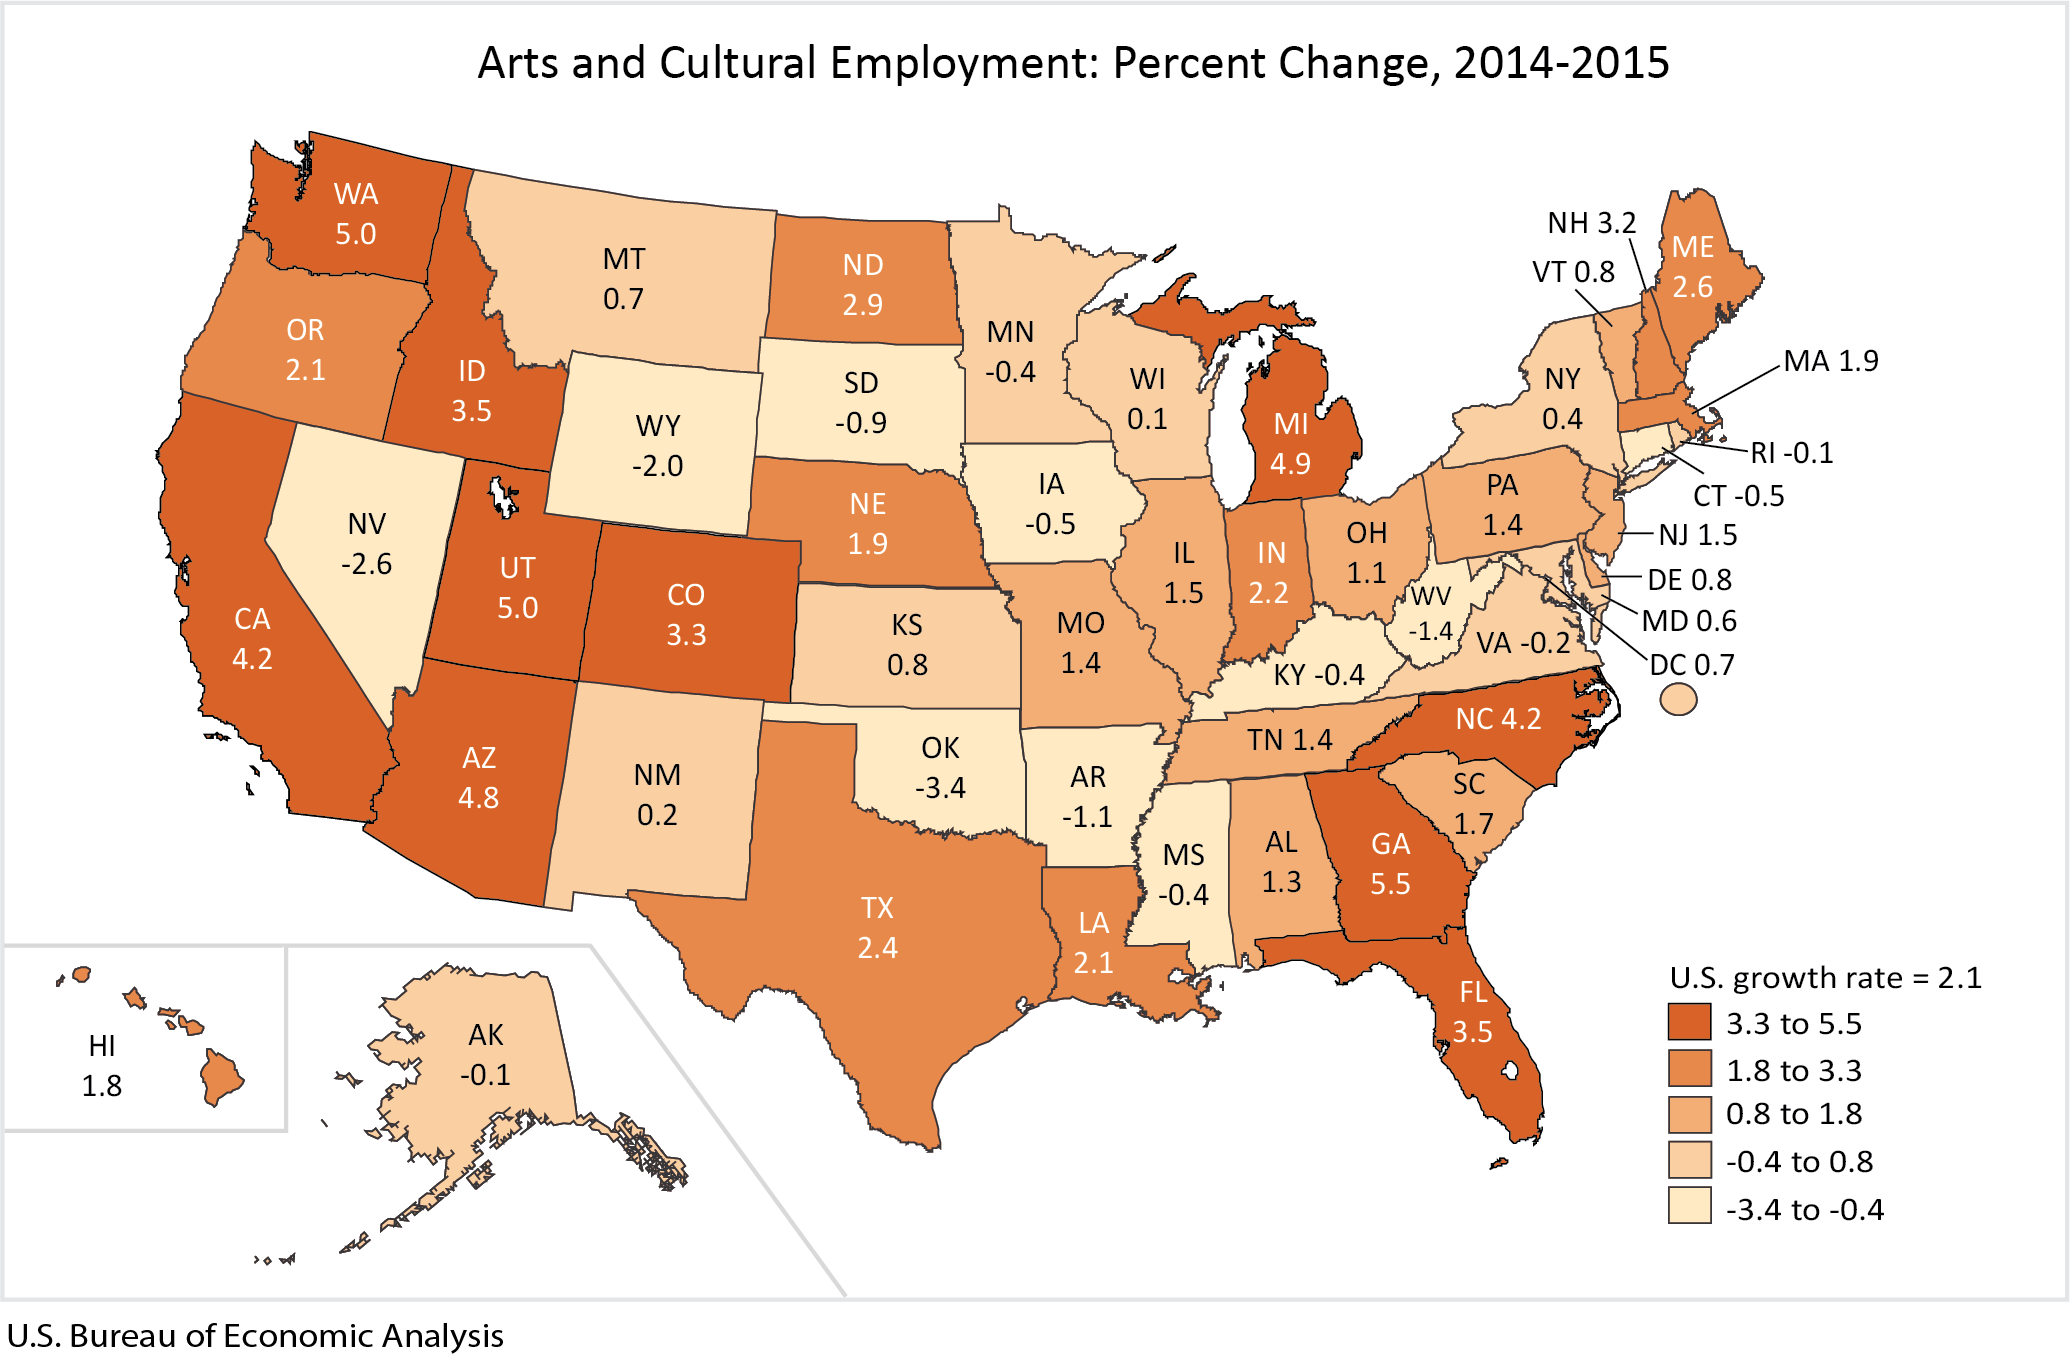 Arts and Cultural Employment: Percent Change, 2014-2015